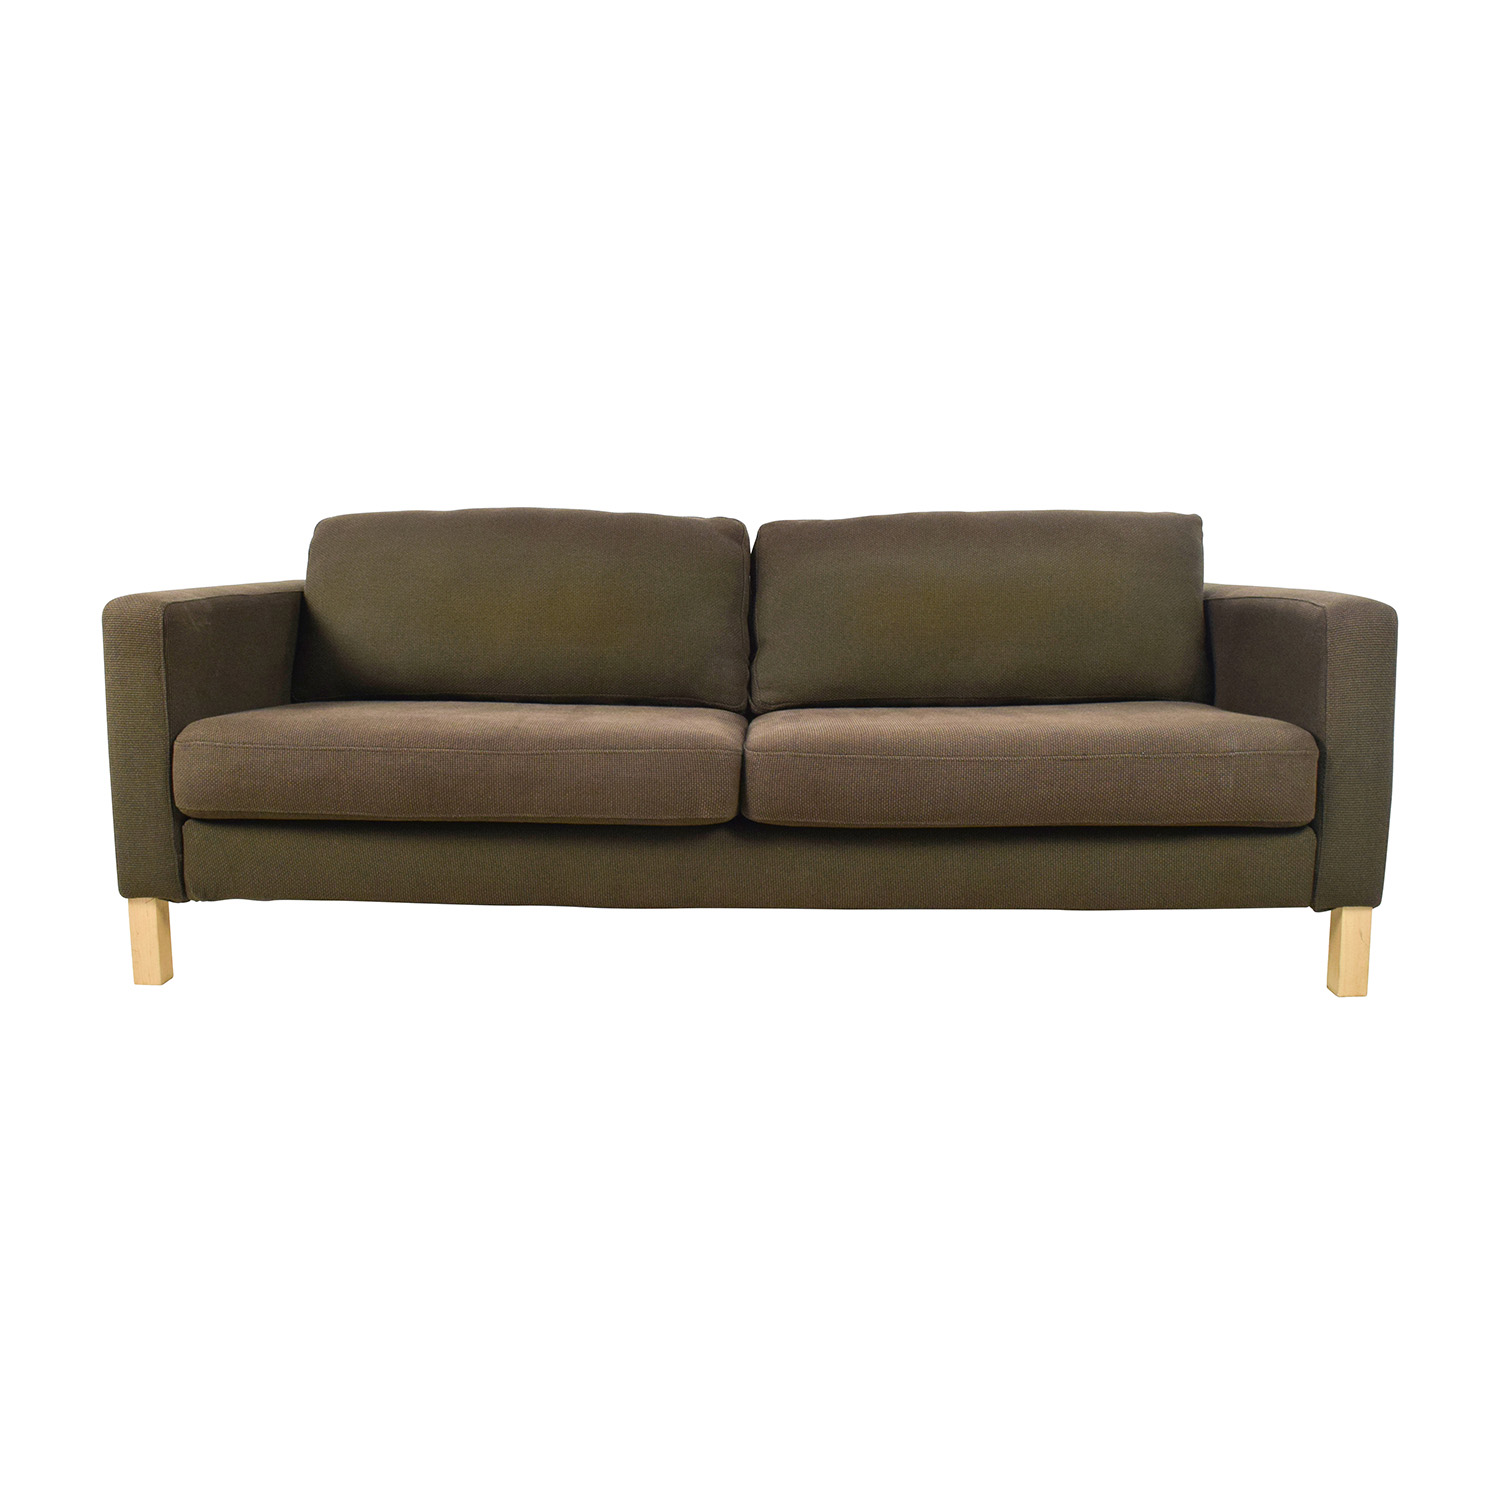 50 Off Ikea Ikea Brown Woven Sofa Sofas